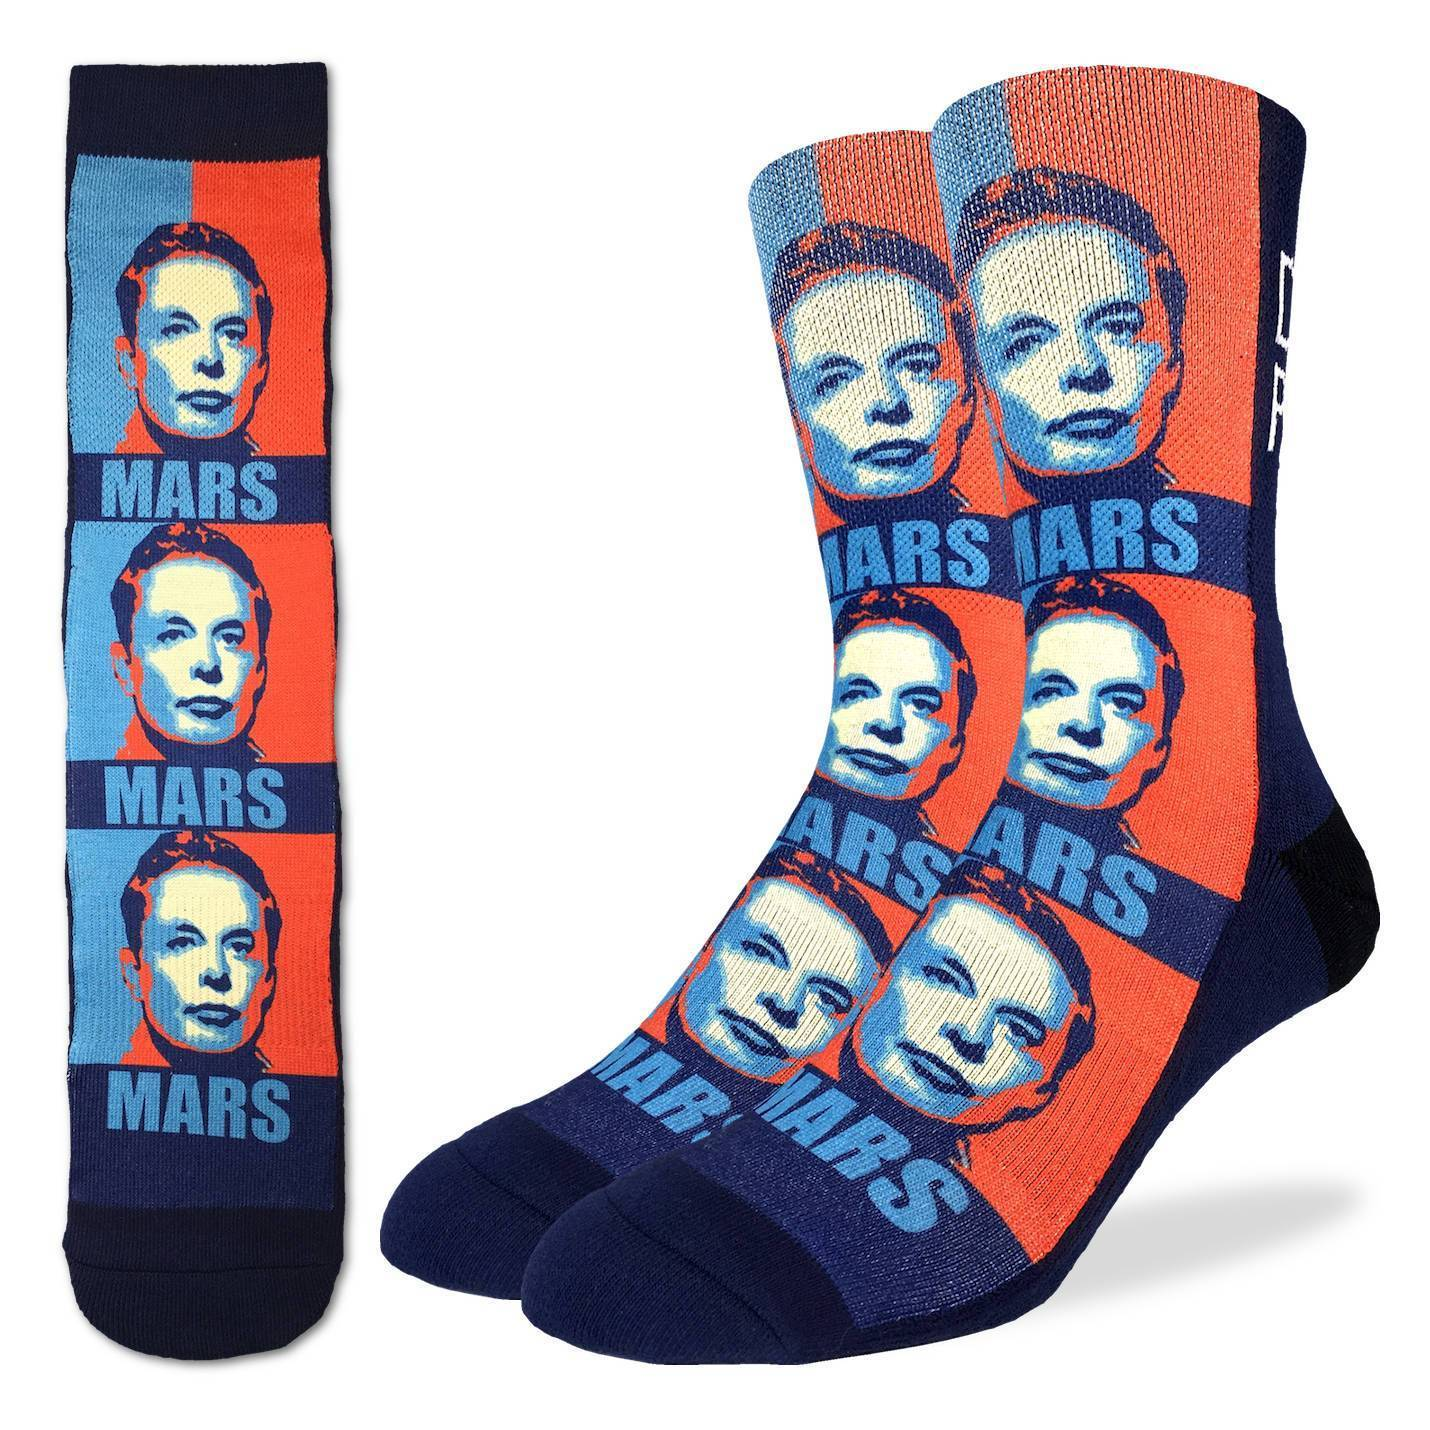 Men's Elon Musk Socks - Good Luck Sock